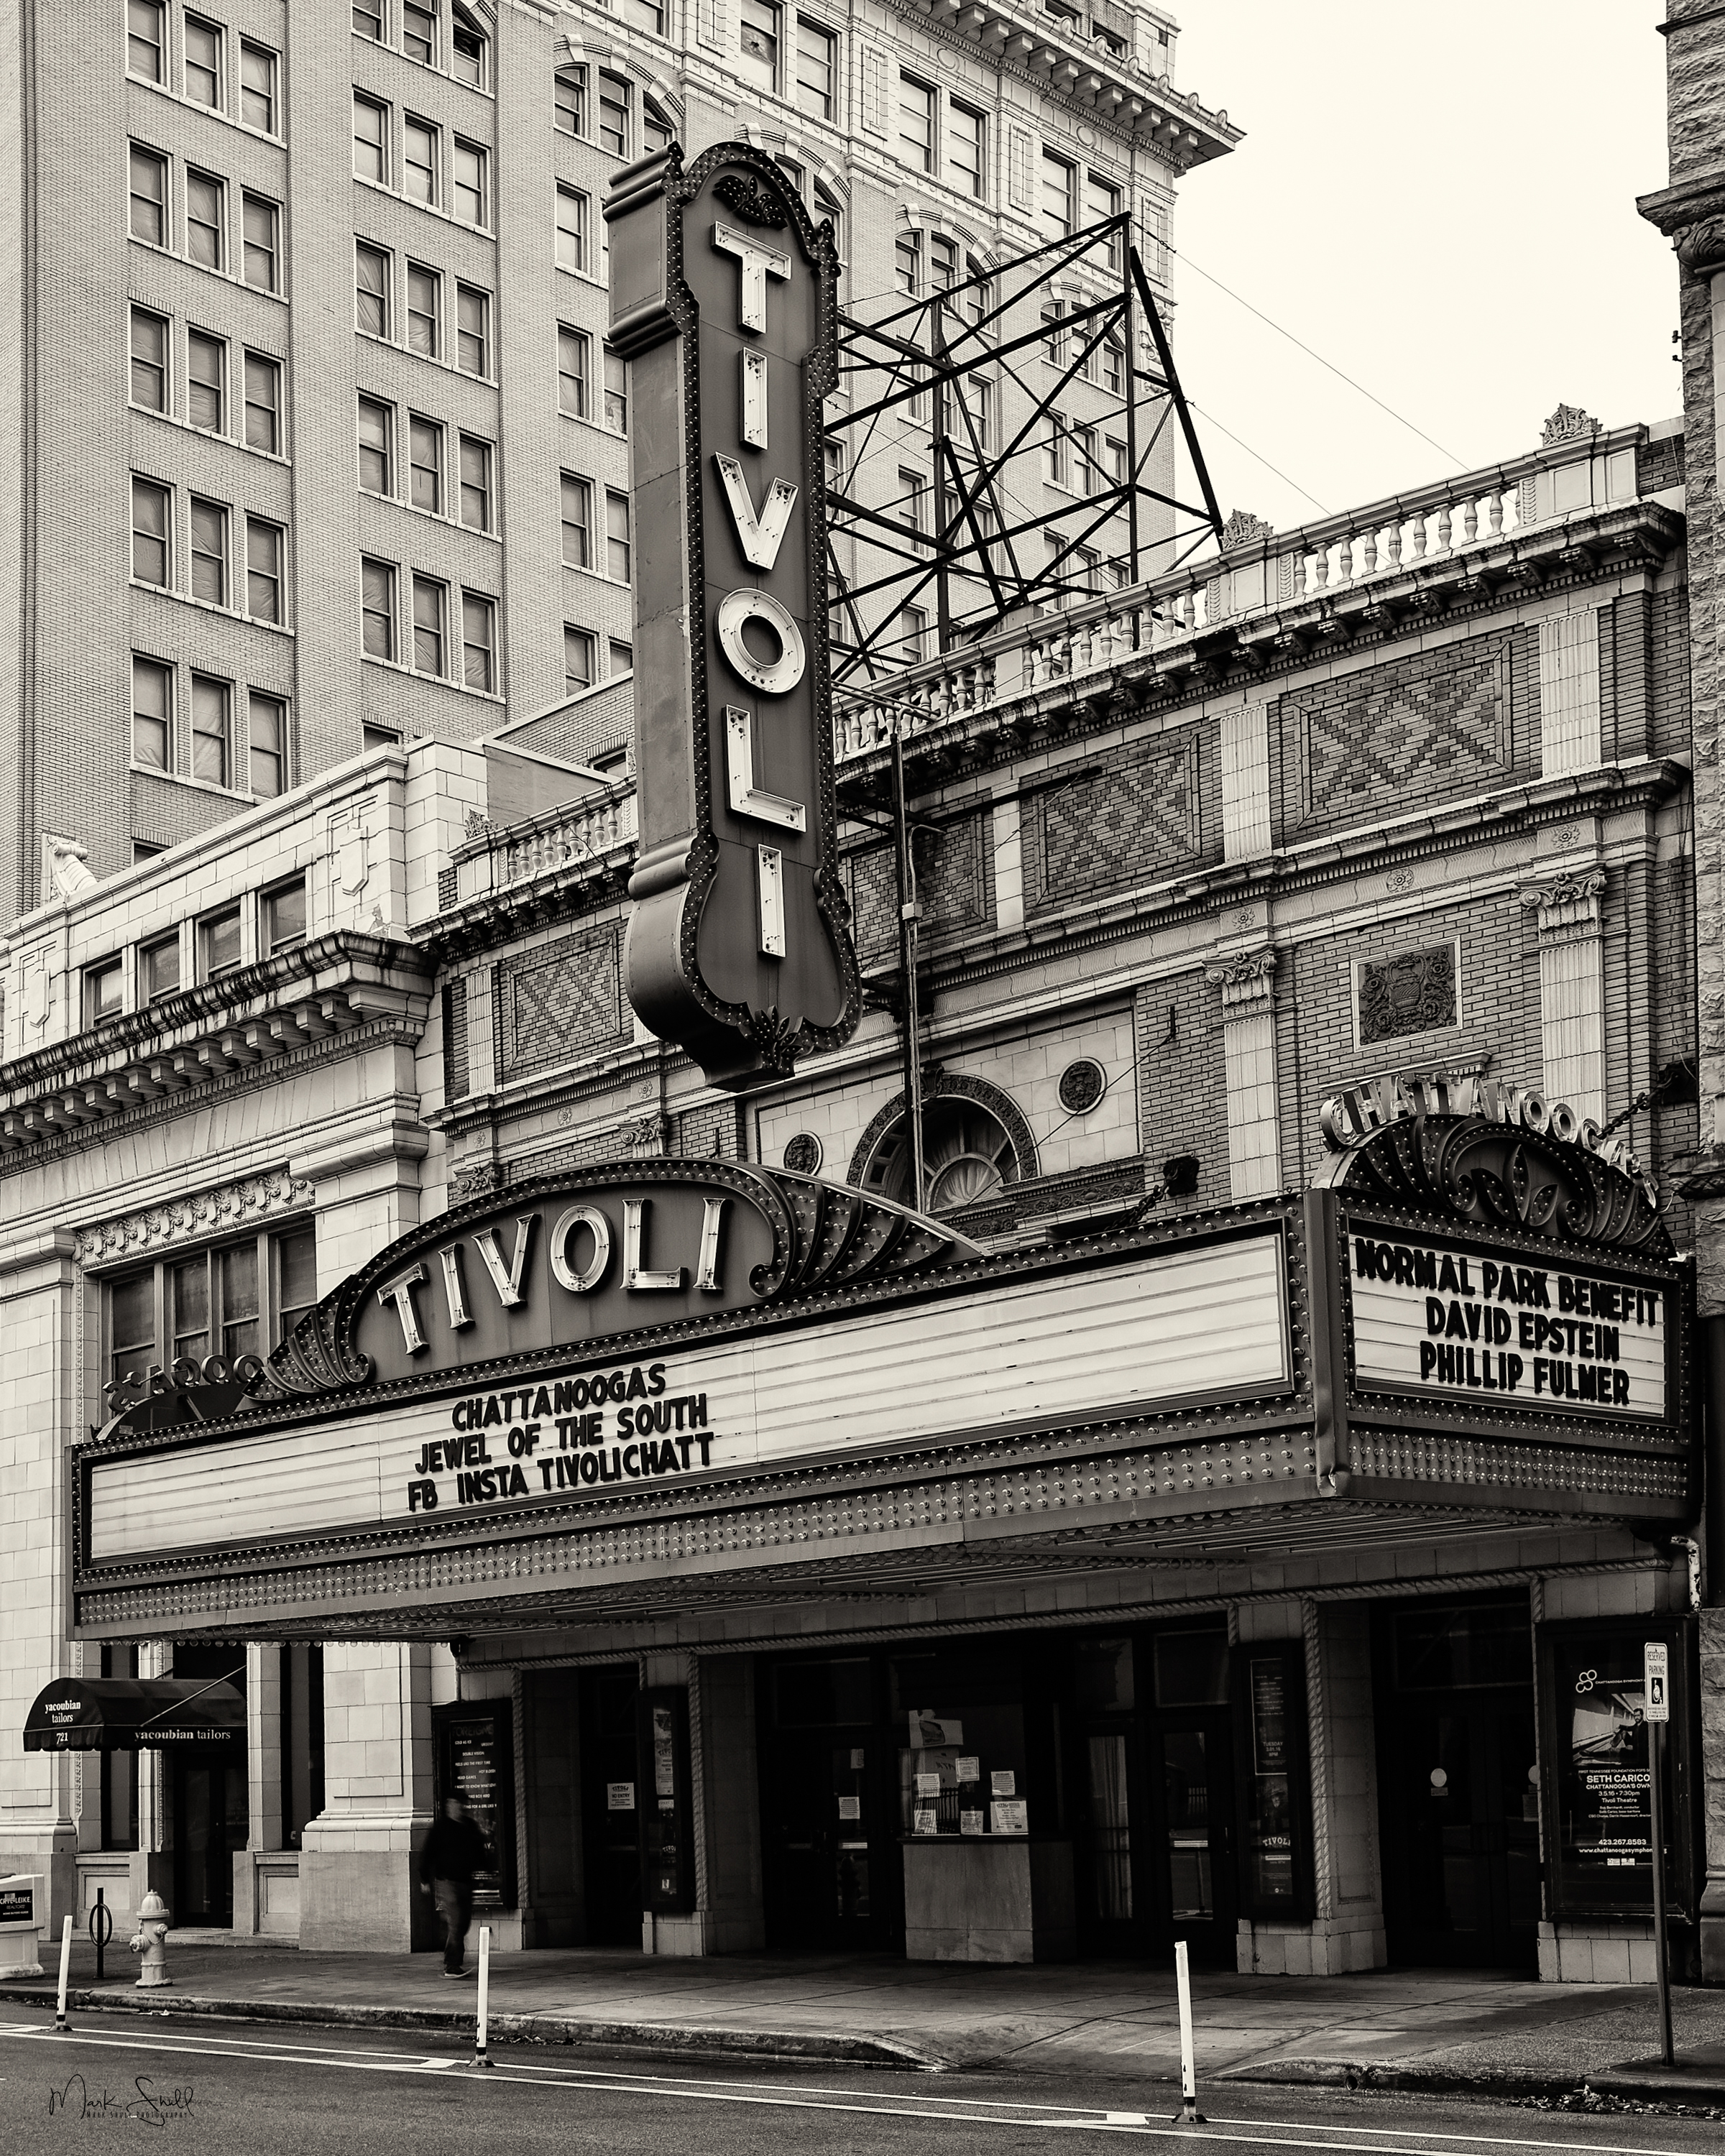 Tivoli Theater BW